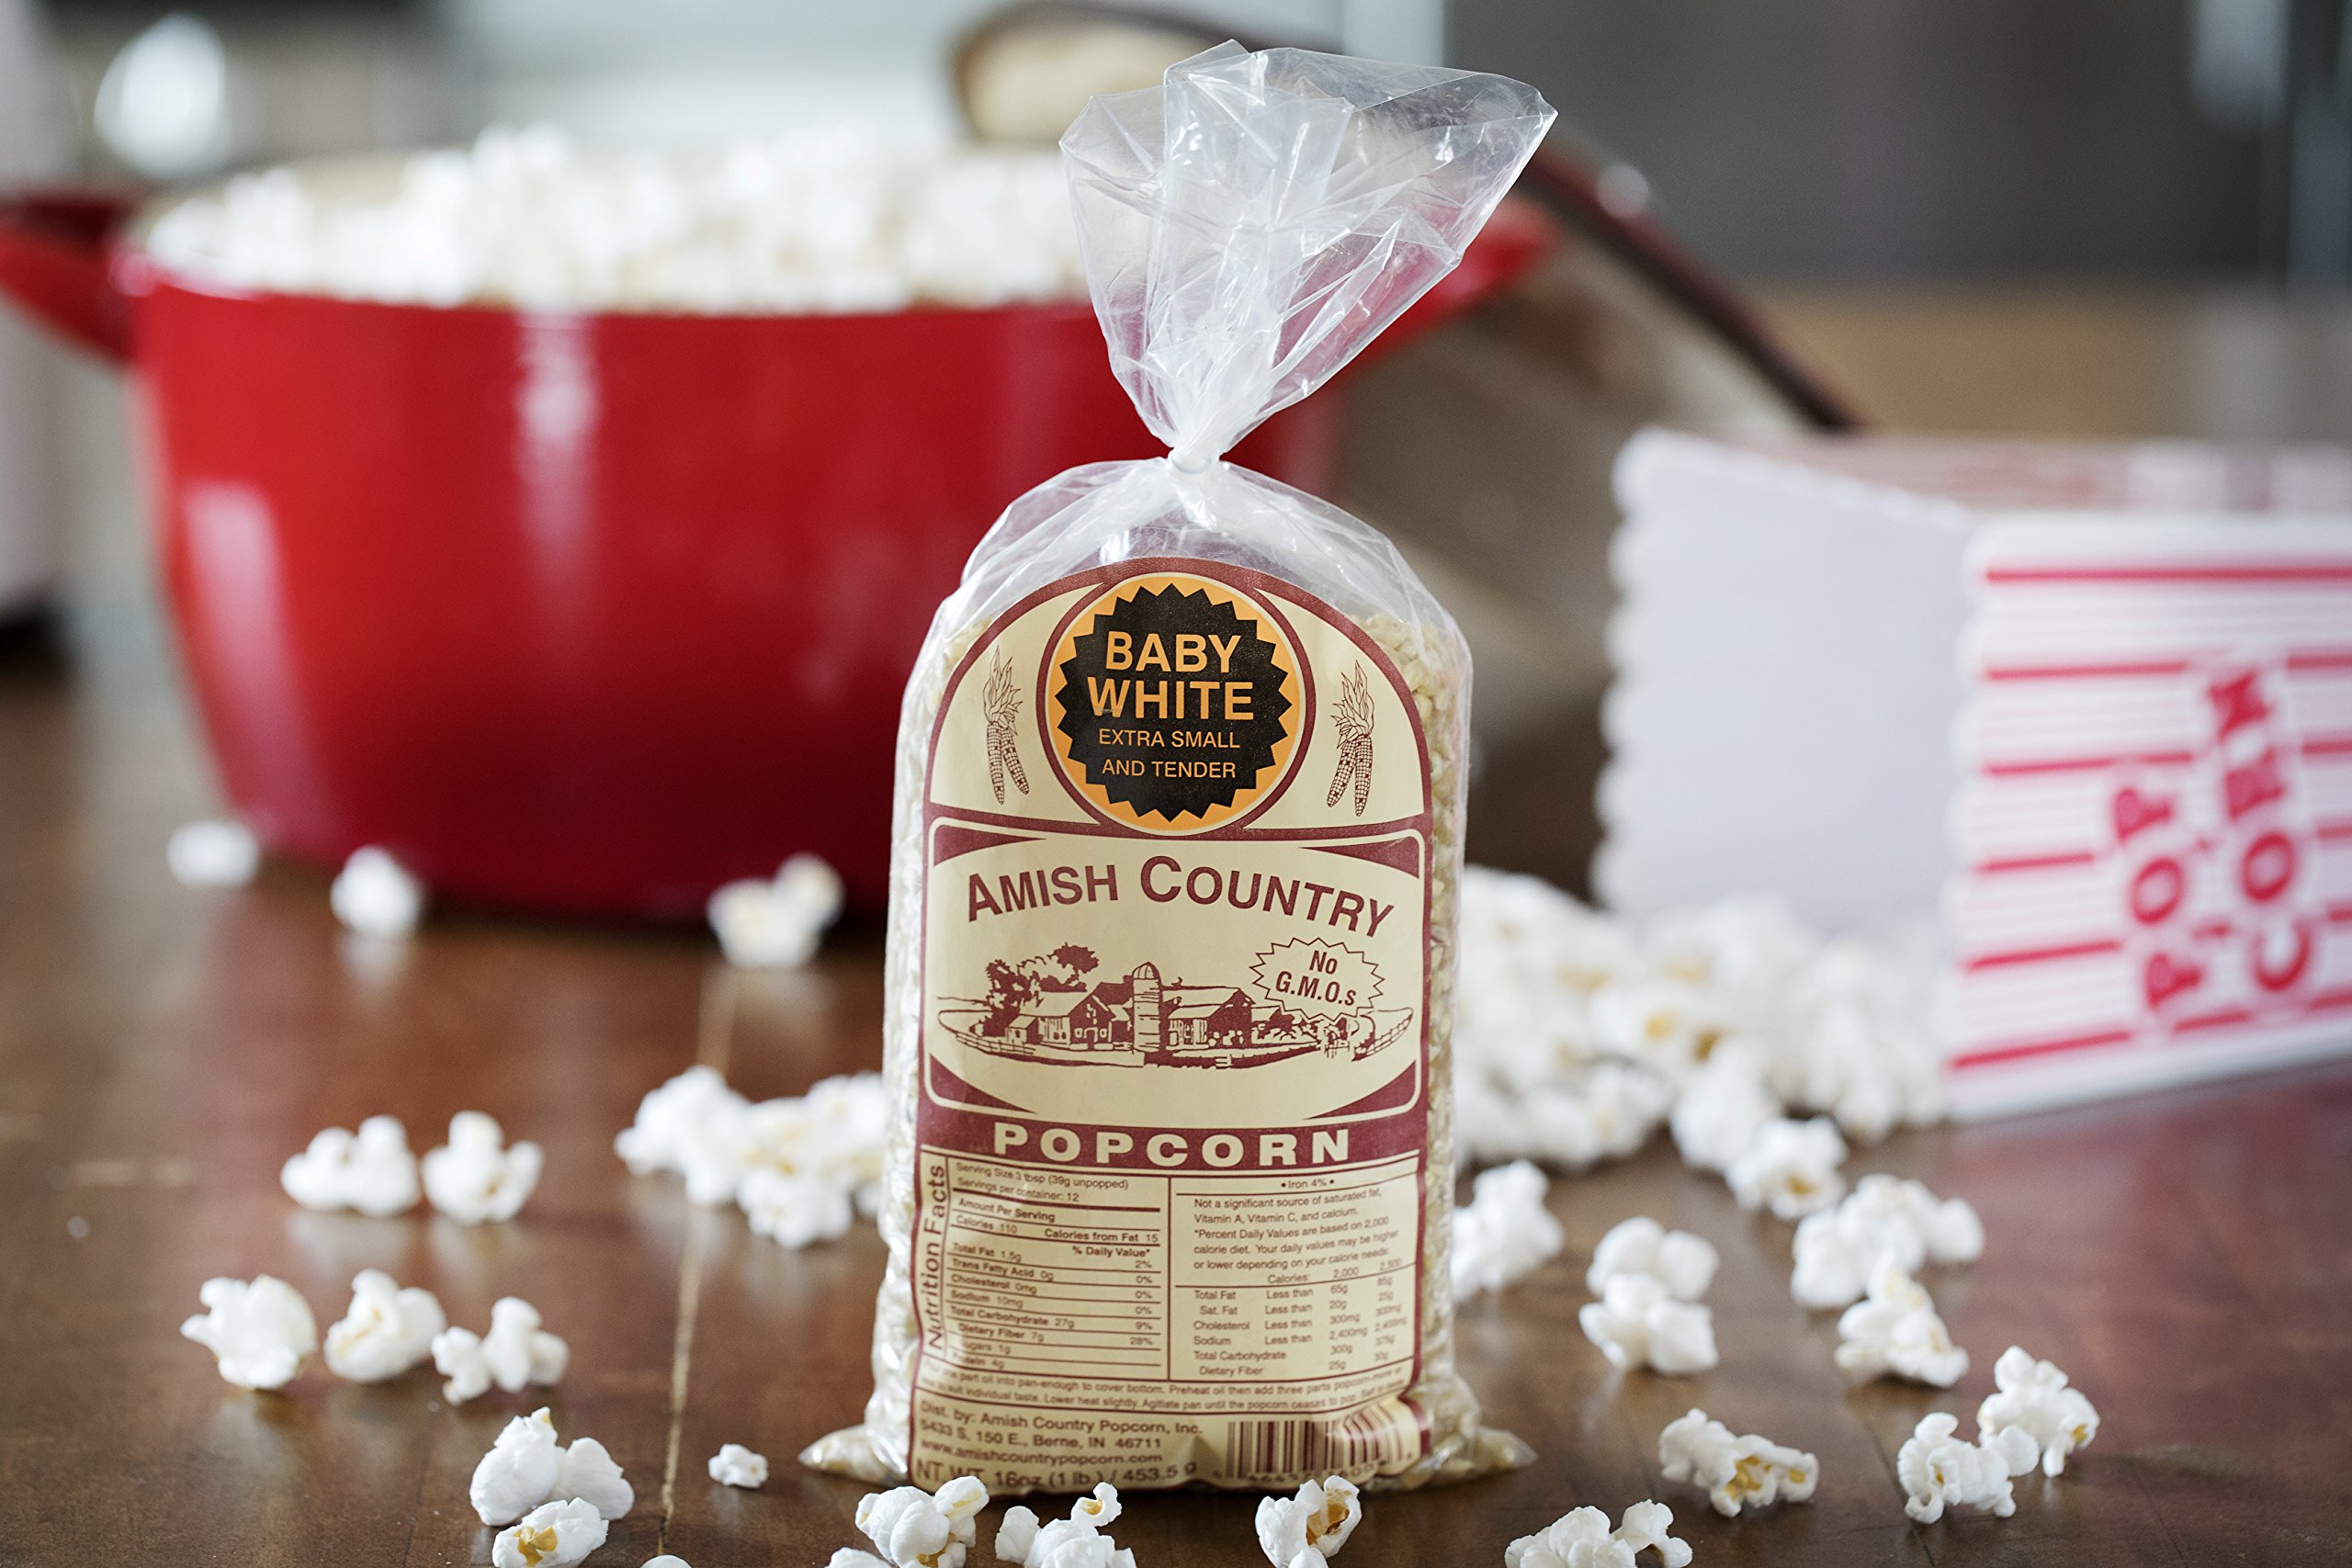 Amish Country Popcorn - Baby White (1 Pound Bag) Small & Tender Popcorn - Old Fashioned And Delicious, with Recipe Guide by Amish Country Popcorn (Image #3)